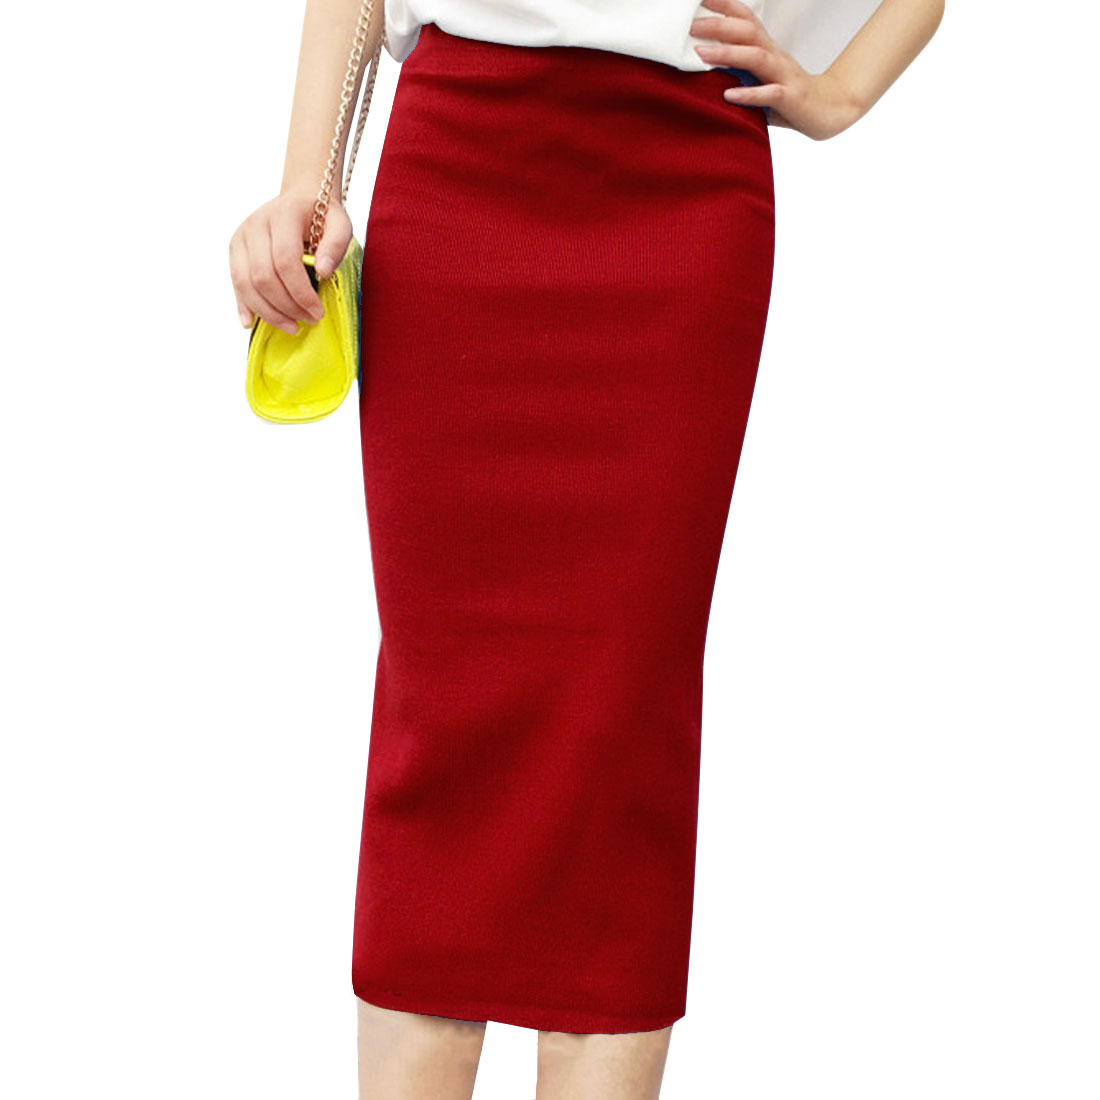 Women's Stretchy Stylish Back Slit Easy-wear S Solid Red Knitted Skirt